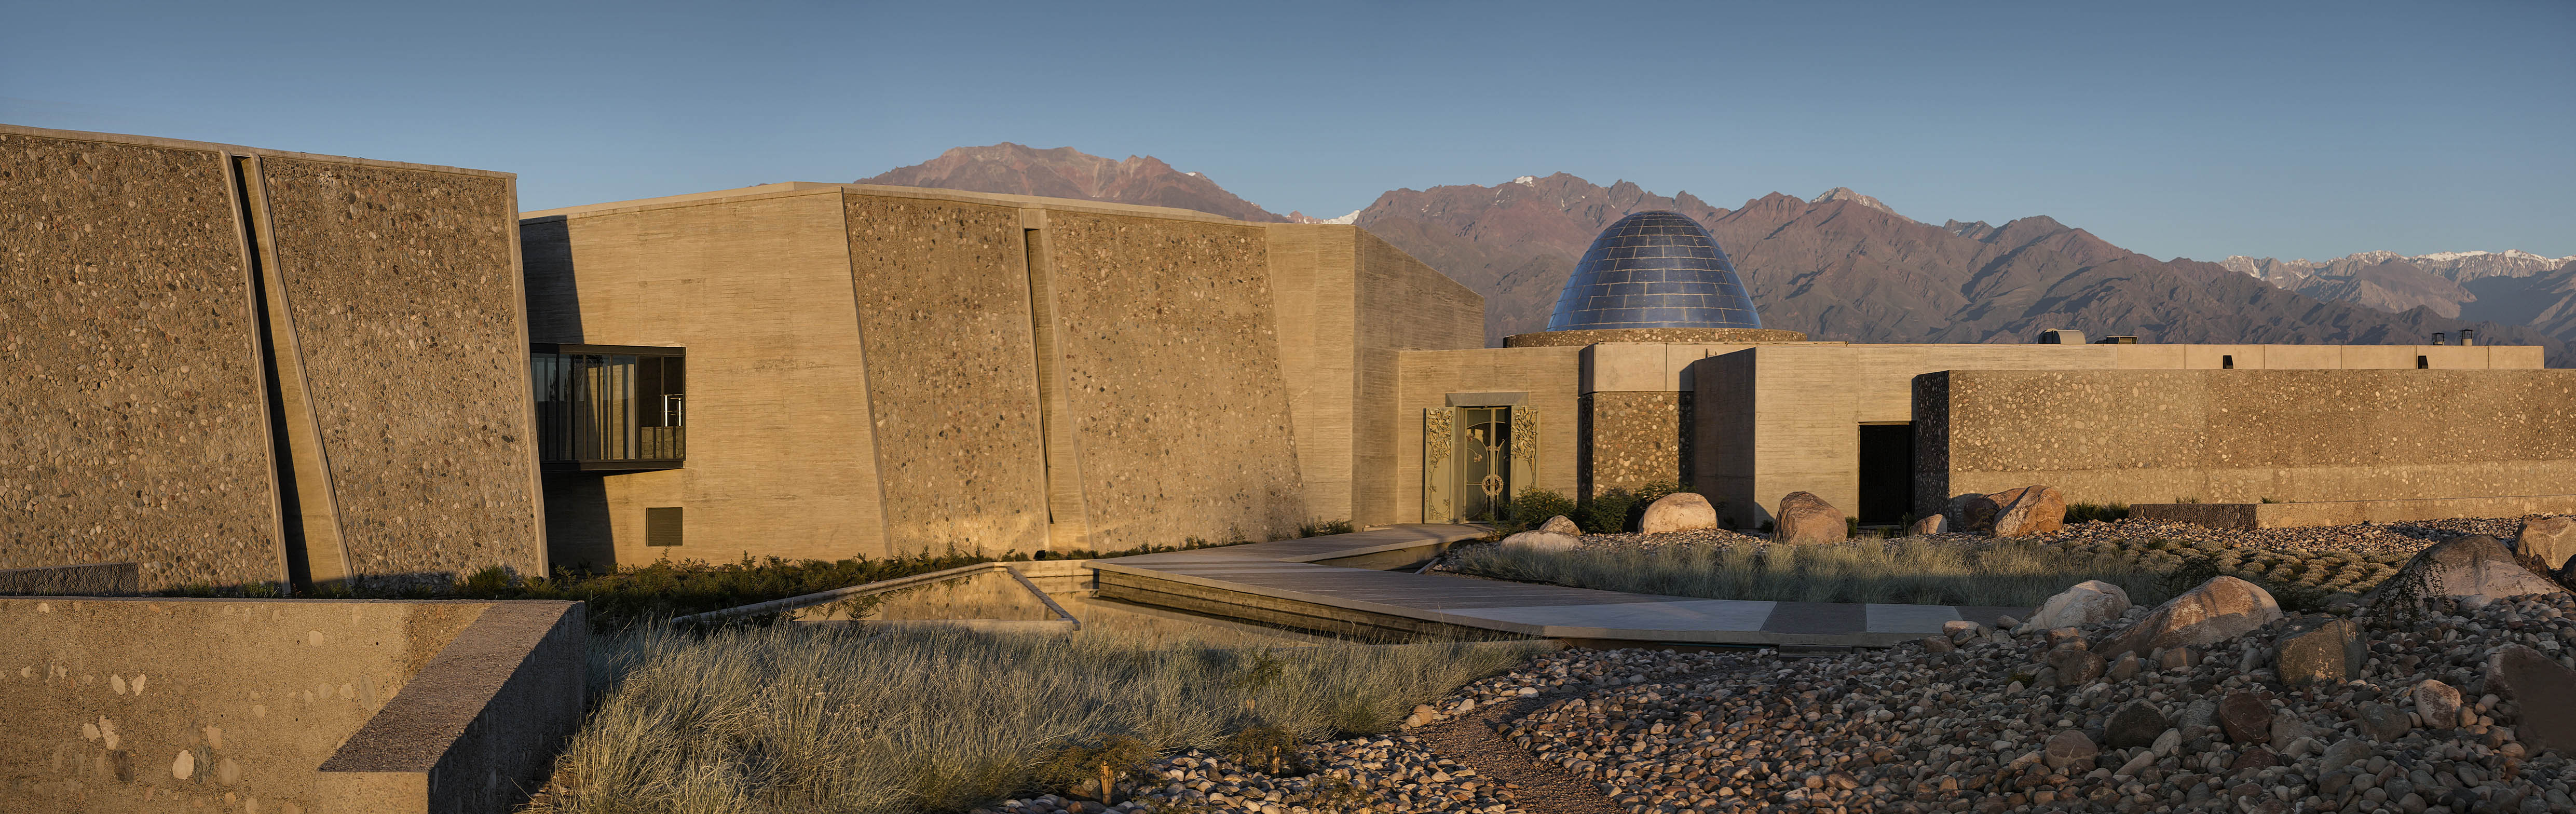 Winesellers, Ltd. Familia Zuccardi Unviels New Winery in Argentina's Mendoza Region